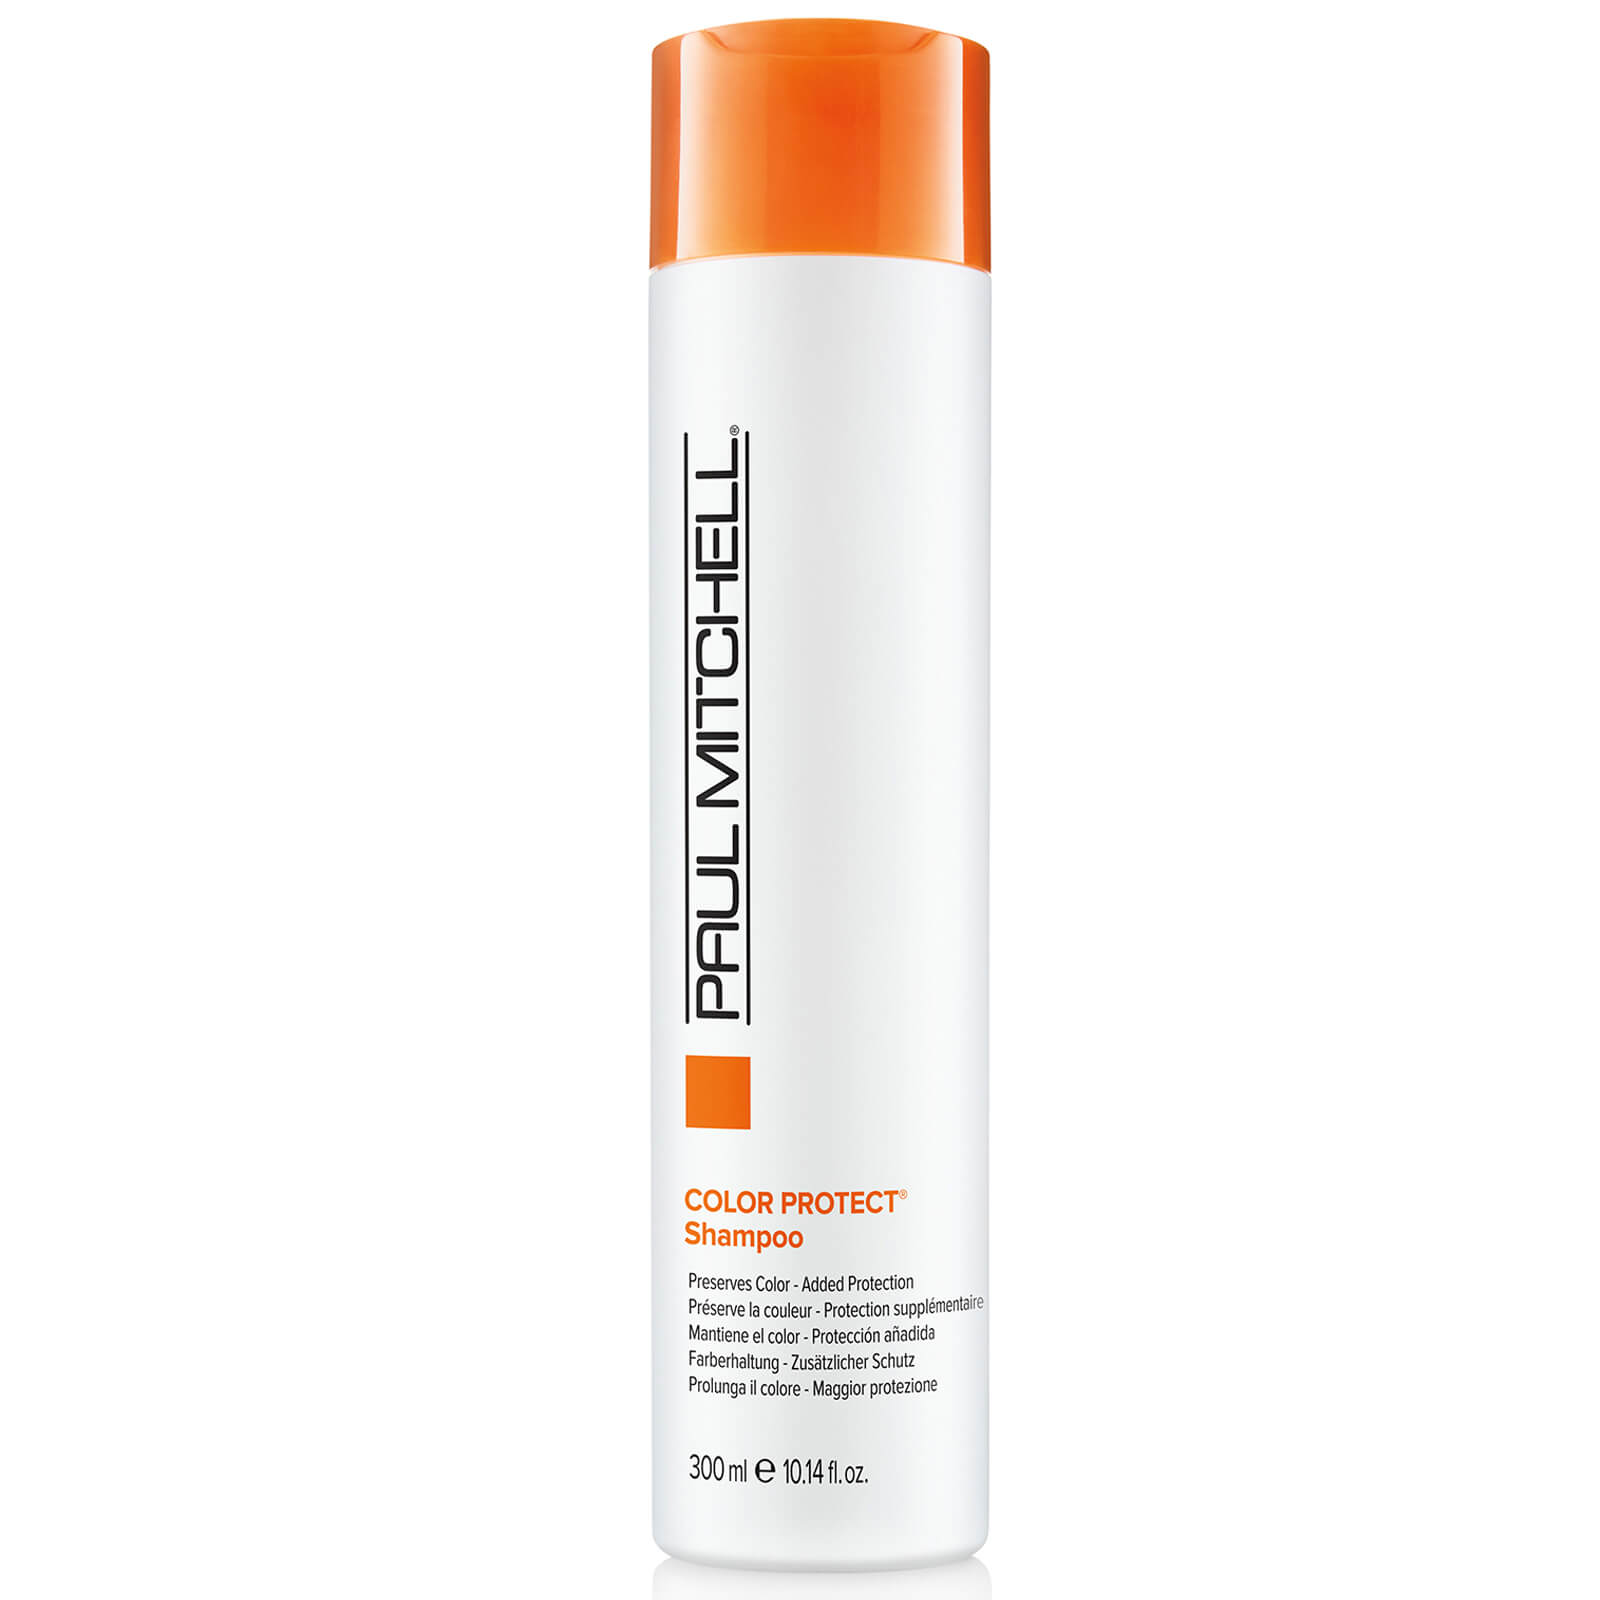 Paul Mitchell Color Protect Shampoo 300Ml